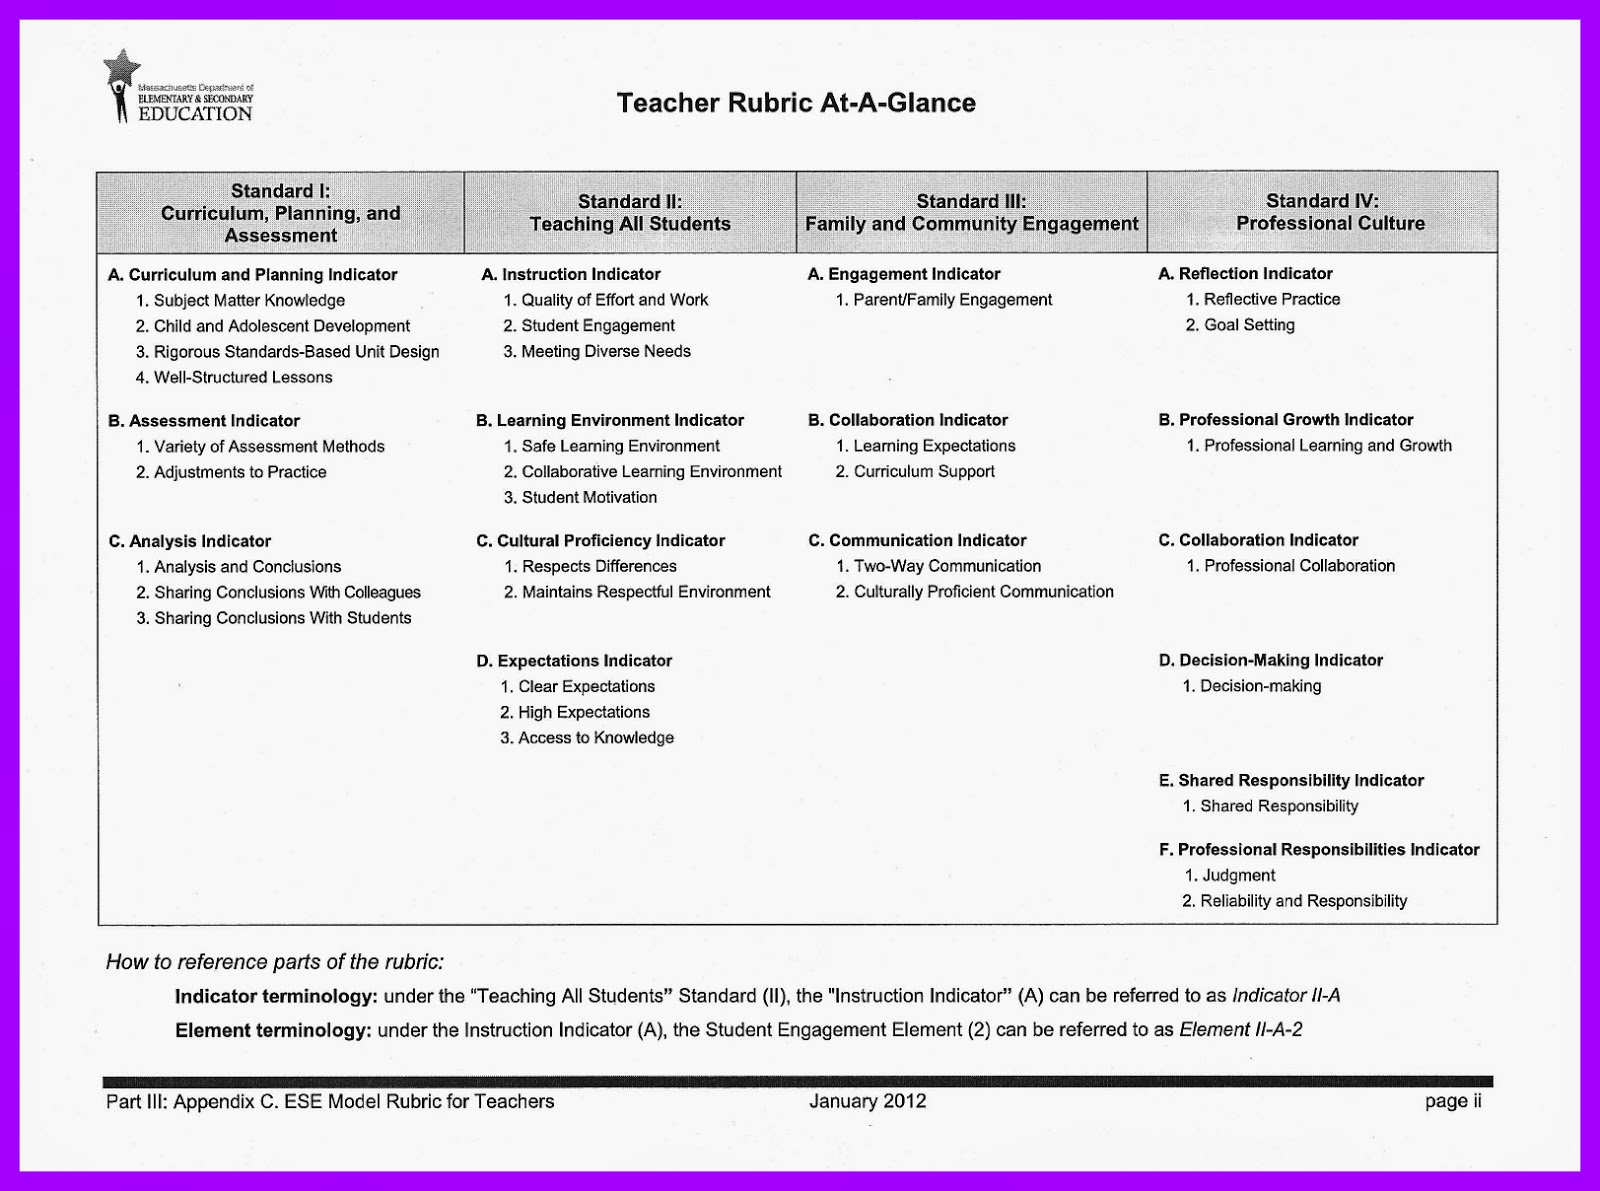 One state's teacher evaluation rubric